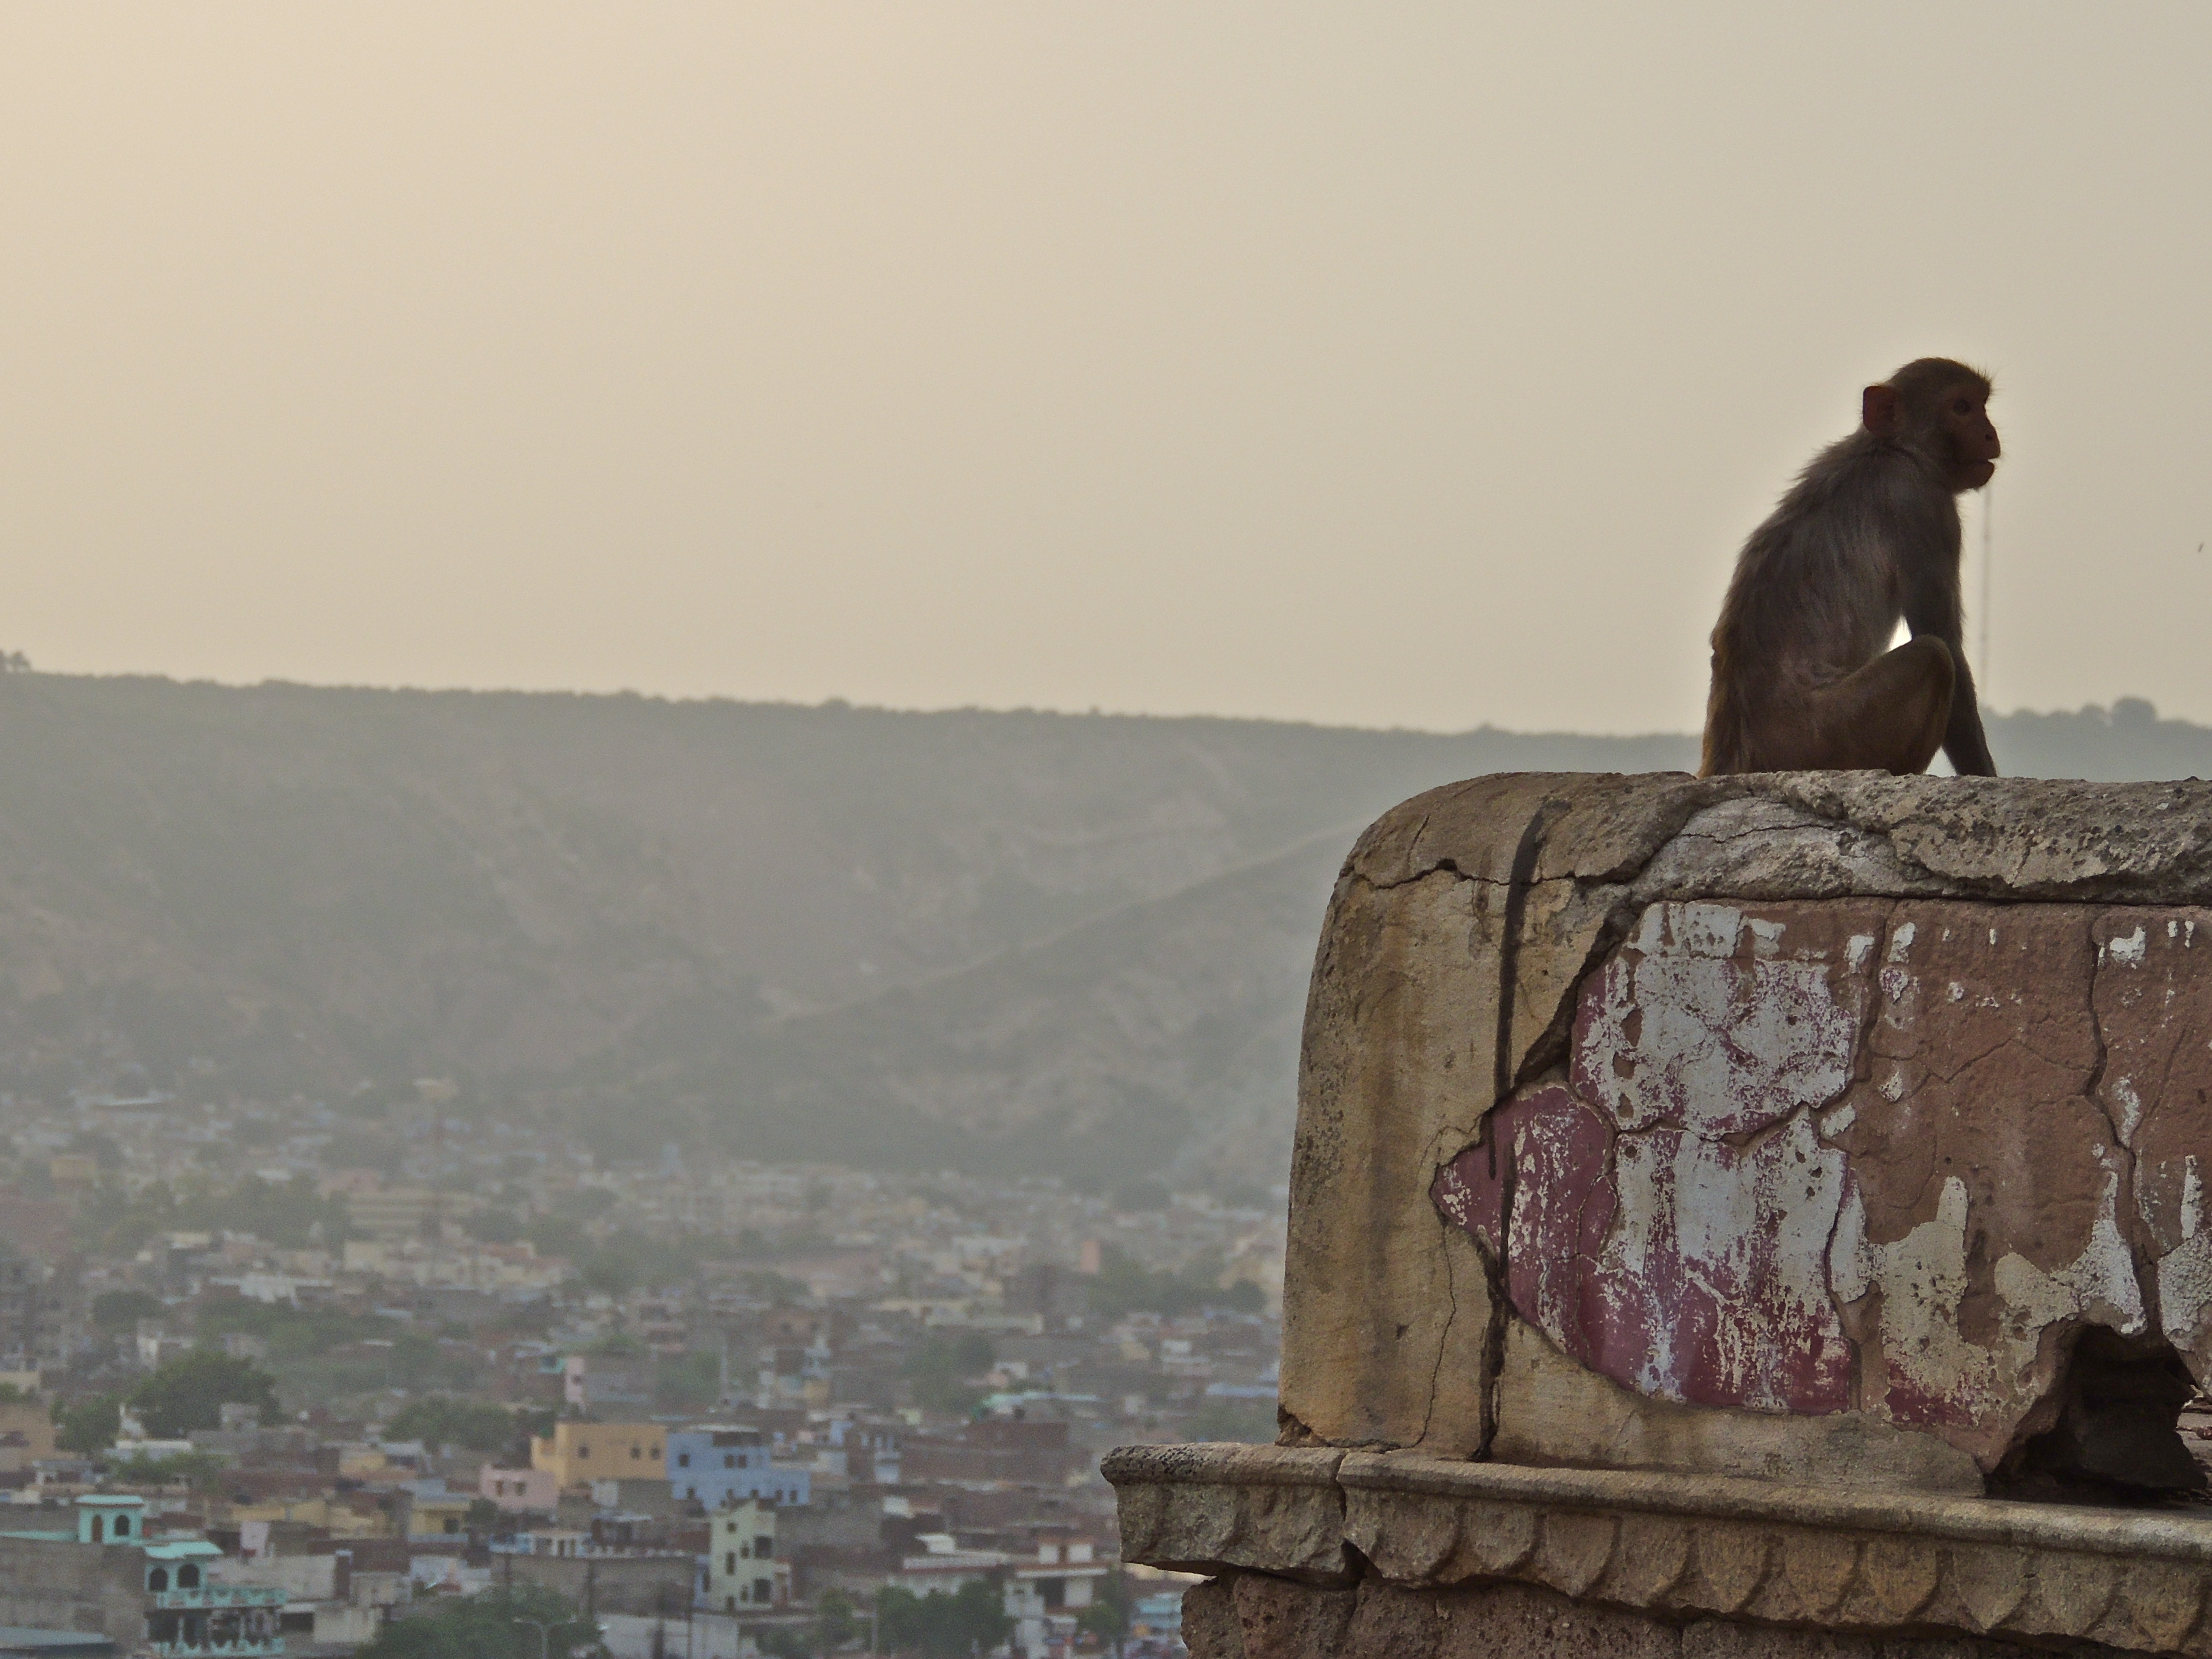 A view from Jaipur's Monkey Temple in India